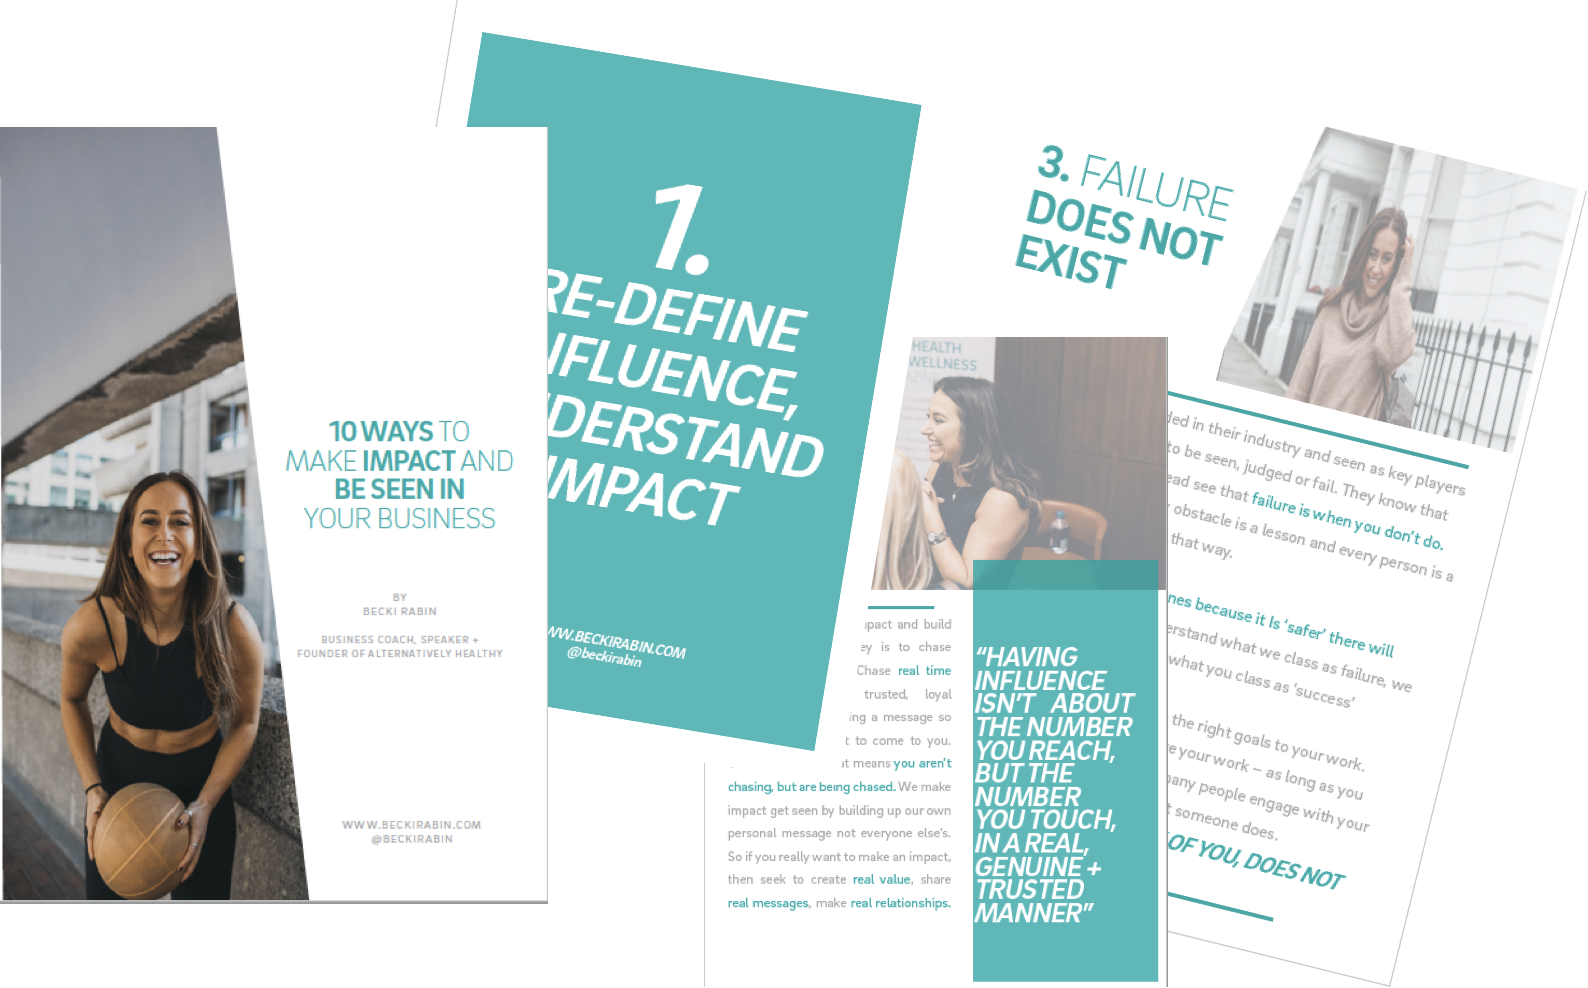 how to make impact and be seen - OUR 10 KEY TIPS ON HOW TO MAKE IMPACT IN YOUR INDUSTRY AND BE SEEN, DOWNLOAD DOCUMENT.